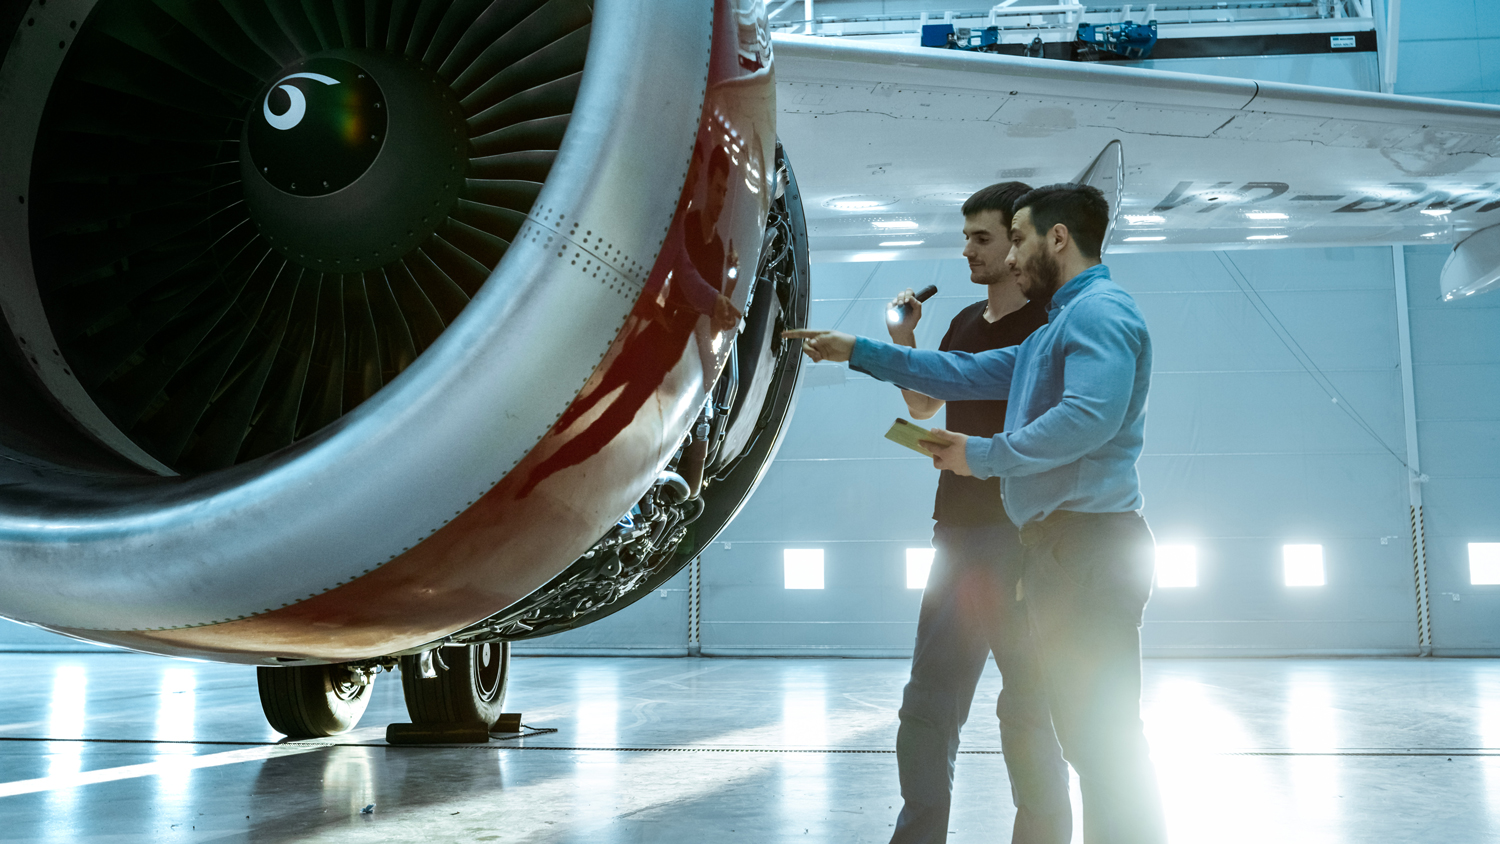 Two maintenance people work on an aircraft engine